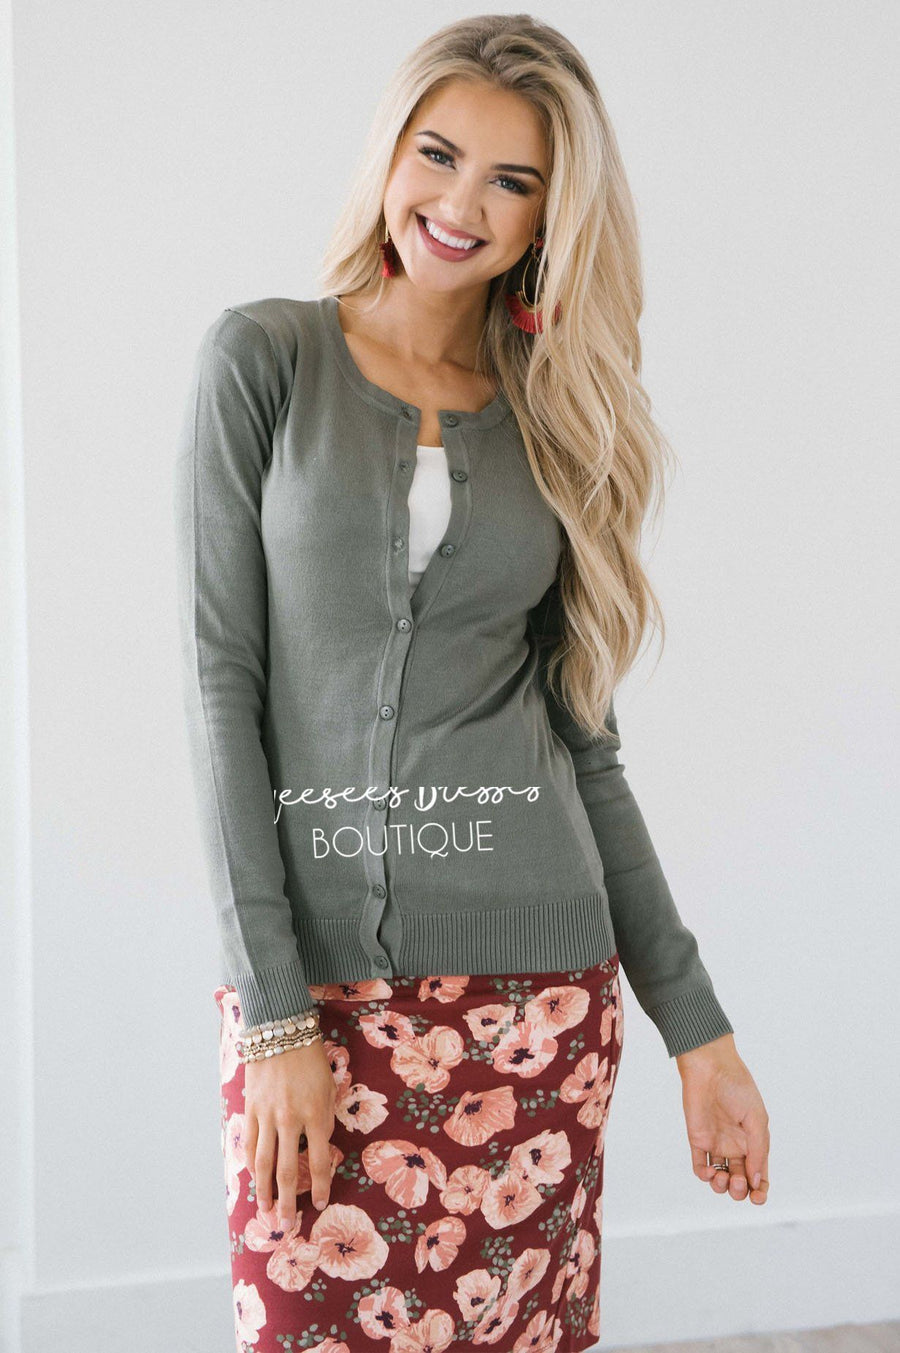 Jackets Cardigans Vintage Coats And Modest Apparel Tagged Size Petal Skirt Olive Light Weight Fall Cardigan